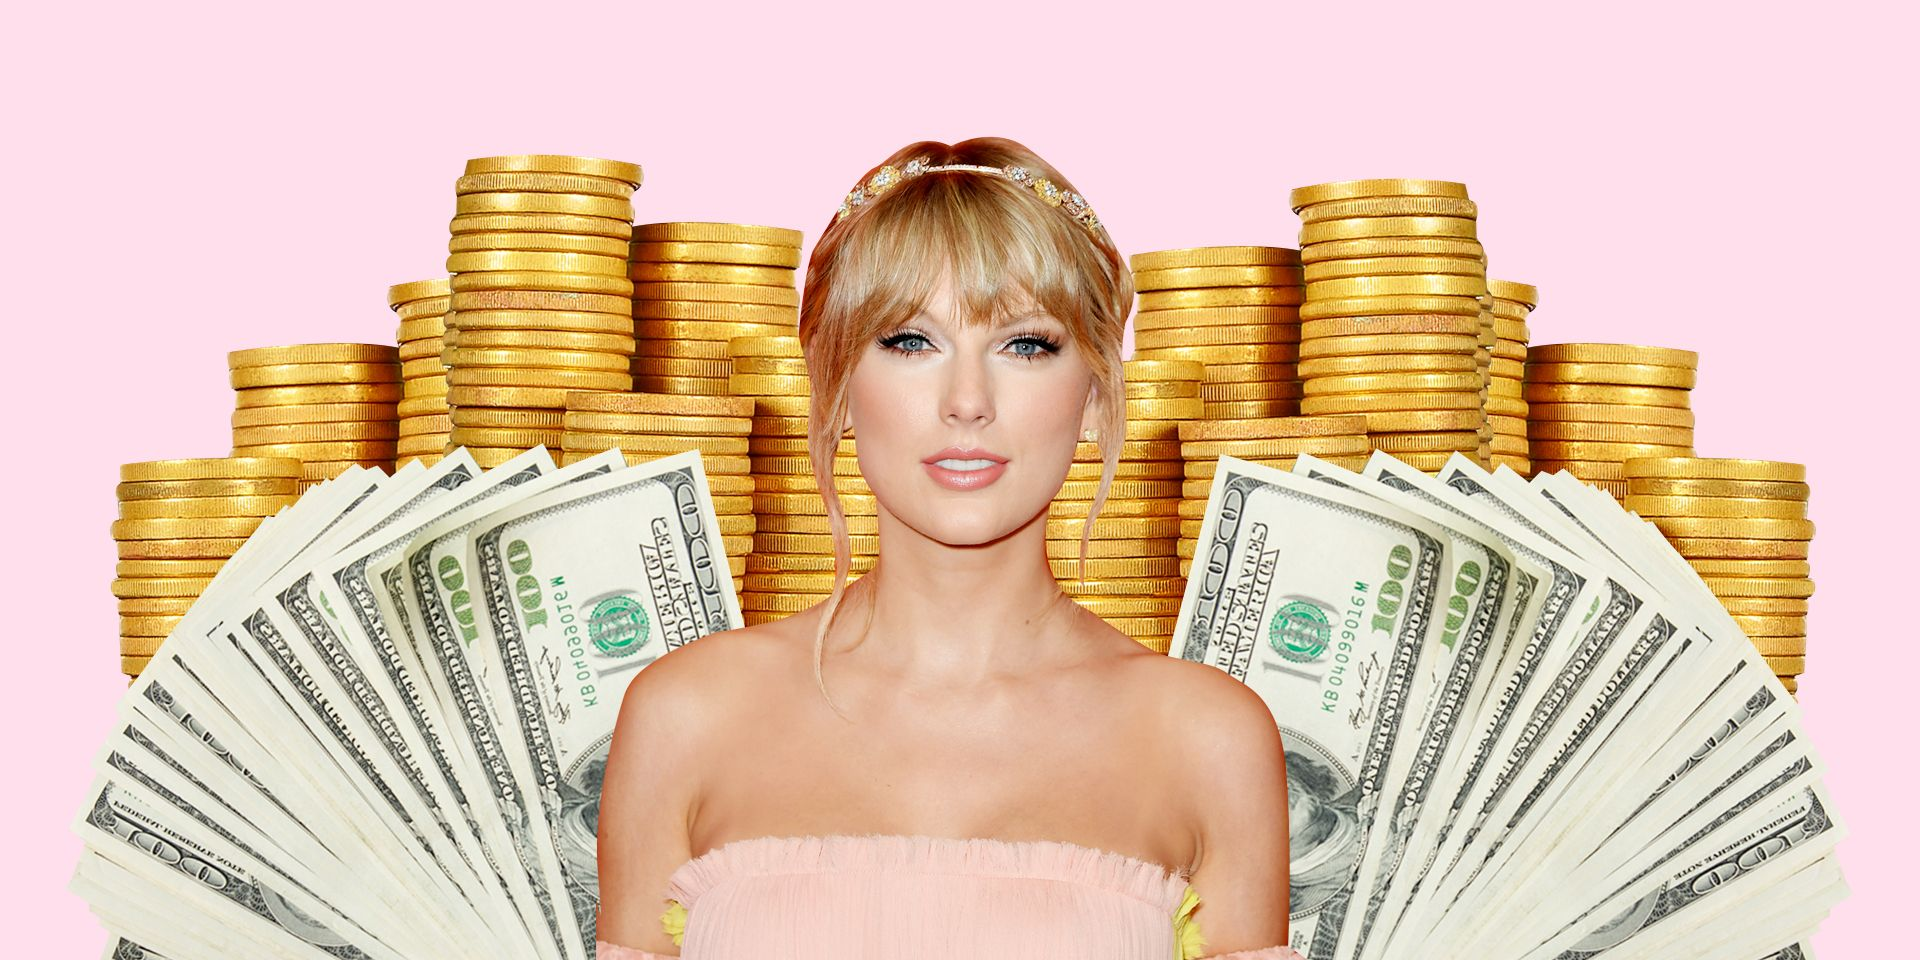 Taylor Swift Net Worth How Much Is Taylor Swift Worth In 2019